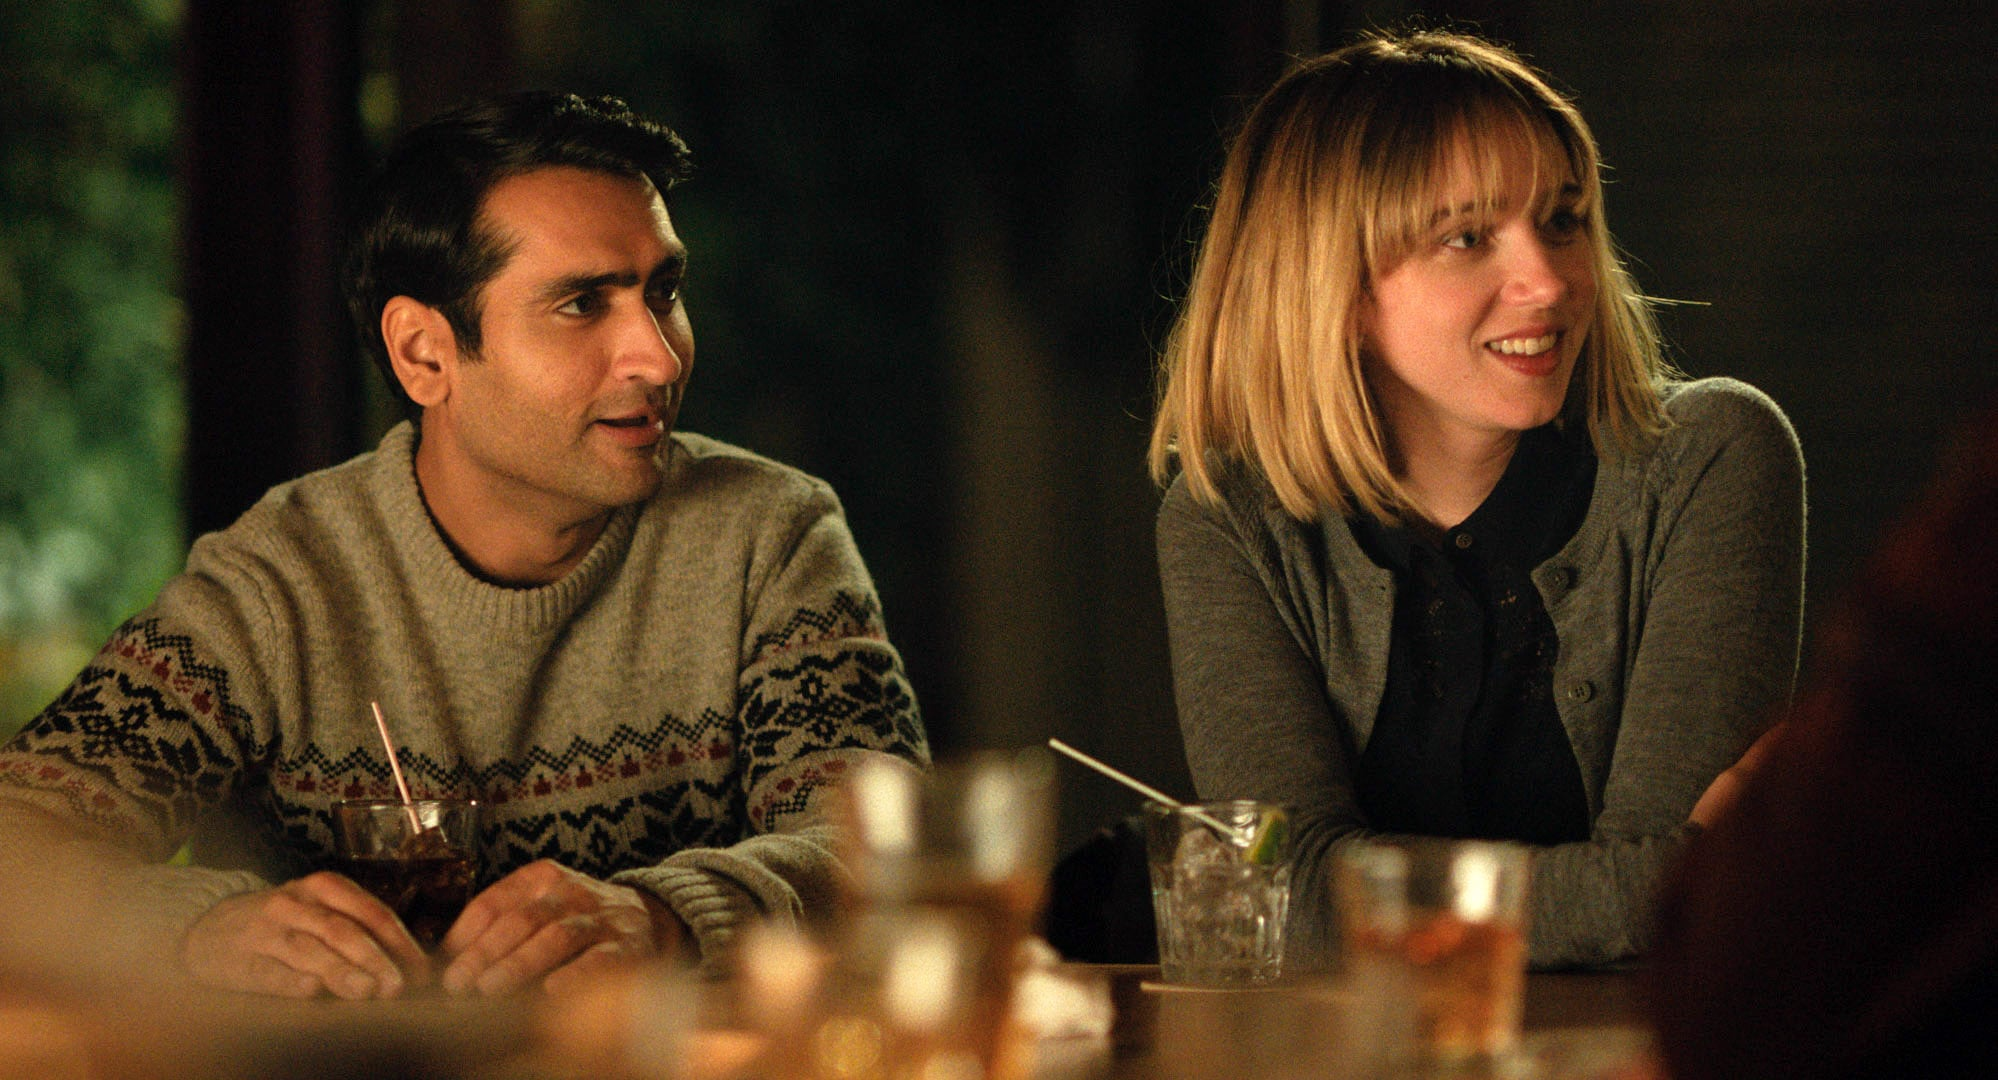 THE BIG SICK, from left: Kumail Nanjiani, Zoe Kazan, 2017.  Lionsgate /Courtesy Everett Collection